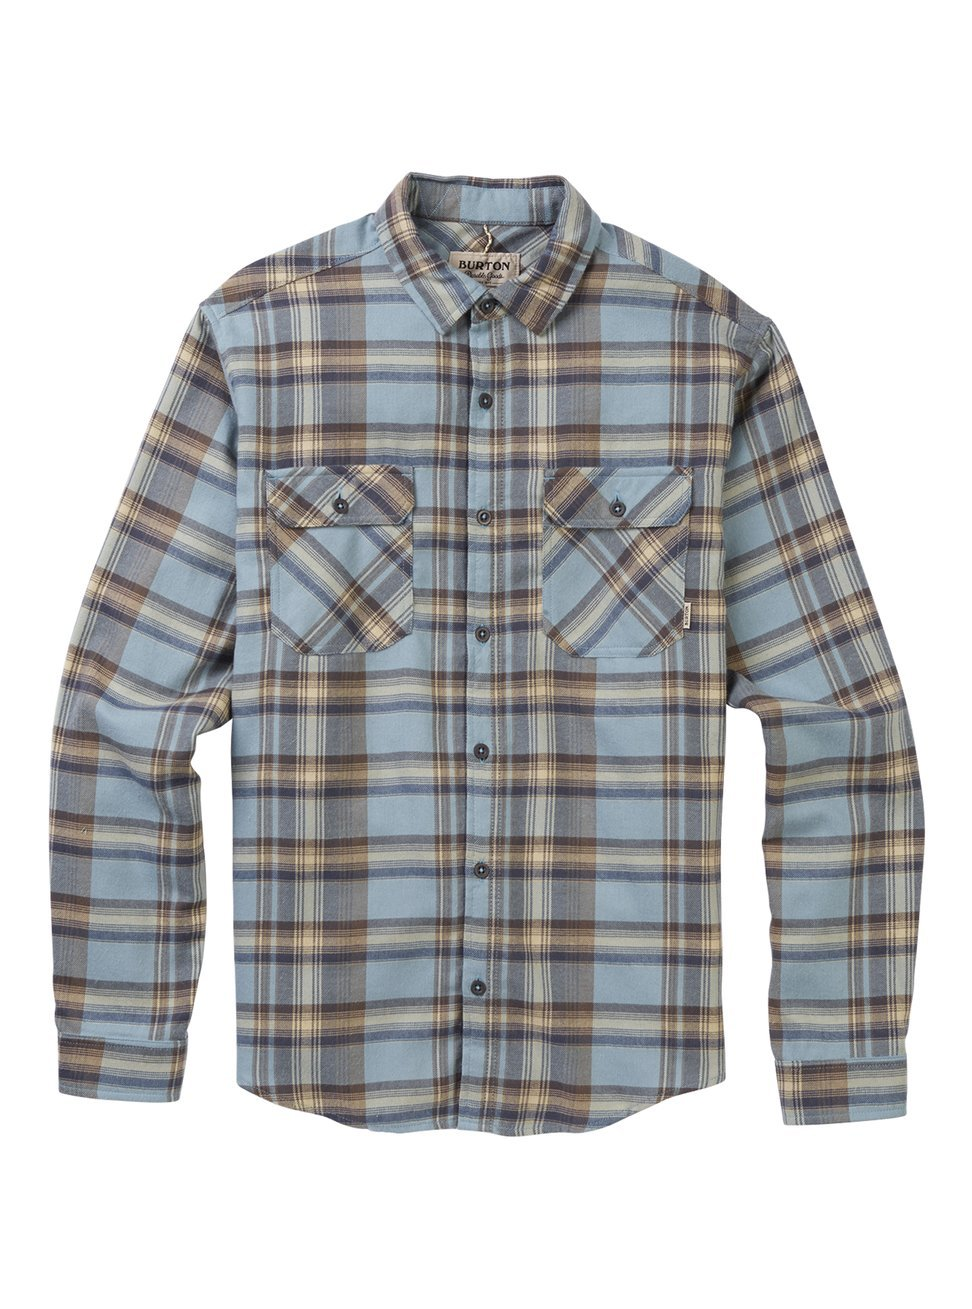 Winter Sky Stella Plaid Small Burton Men's Brighton Flannel Down Shirt, True Black Heather Buffalo W17, Large